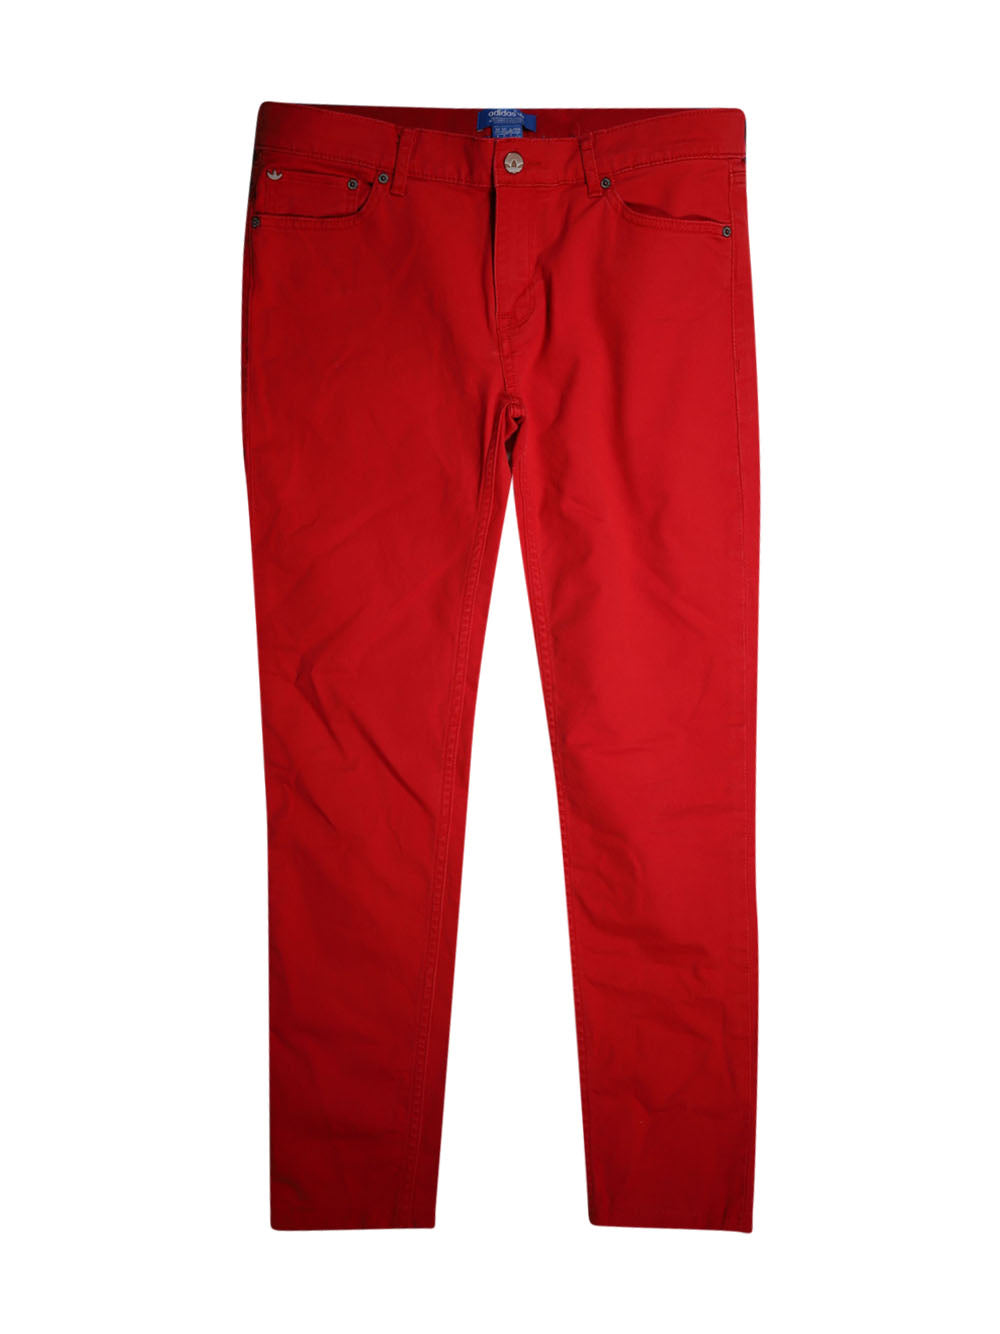 Front photo of Preloved Adidas Red Man's trousers - size 36/S